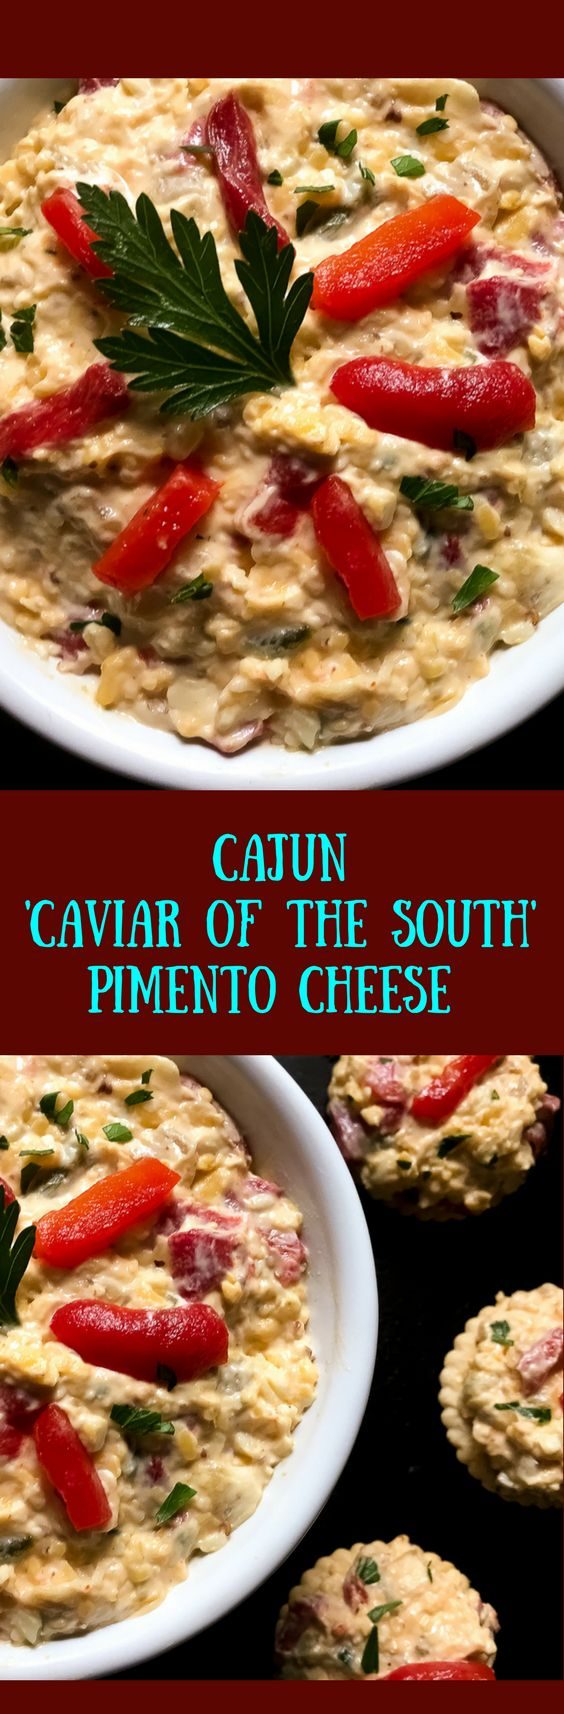 Creole mustard, pickled okra, and the Cajun 'trinity' of onion, green bell pepper, and celery inject a signature spin on the classic recipe. Naturally gluten free, Cajun 'Caviar of the South' Pimento Cheese from A Sprinkling of Cayenne tastes great with crackers, chips, and cut-up veggies. | http://asprinklingofcayenne.com.